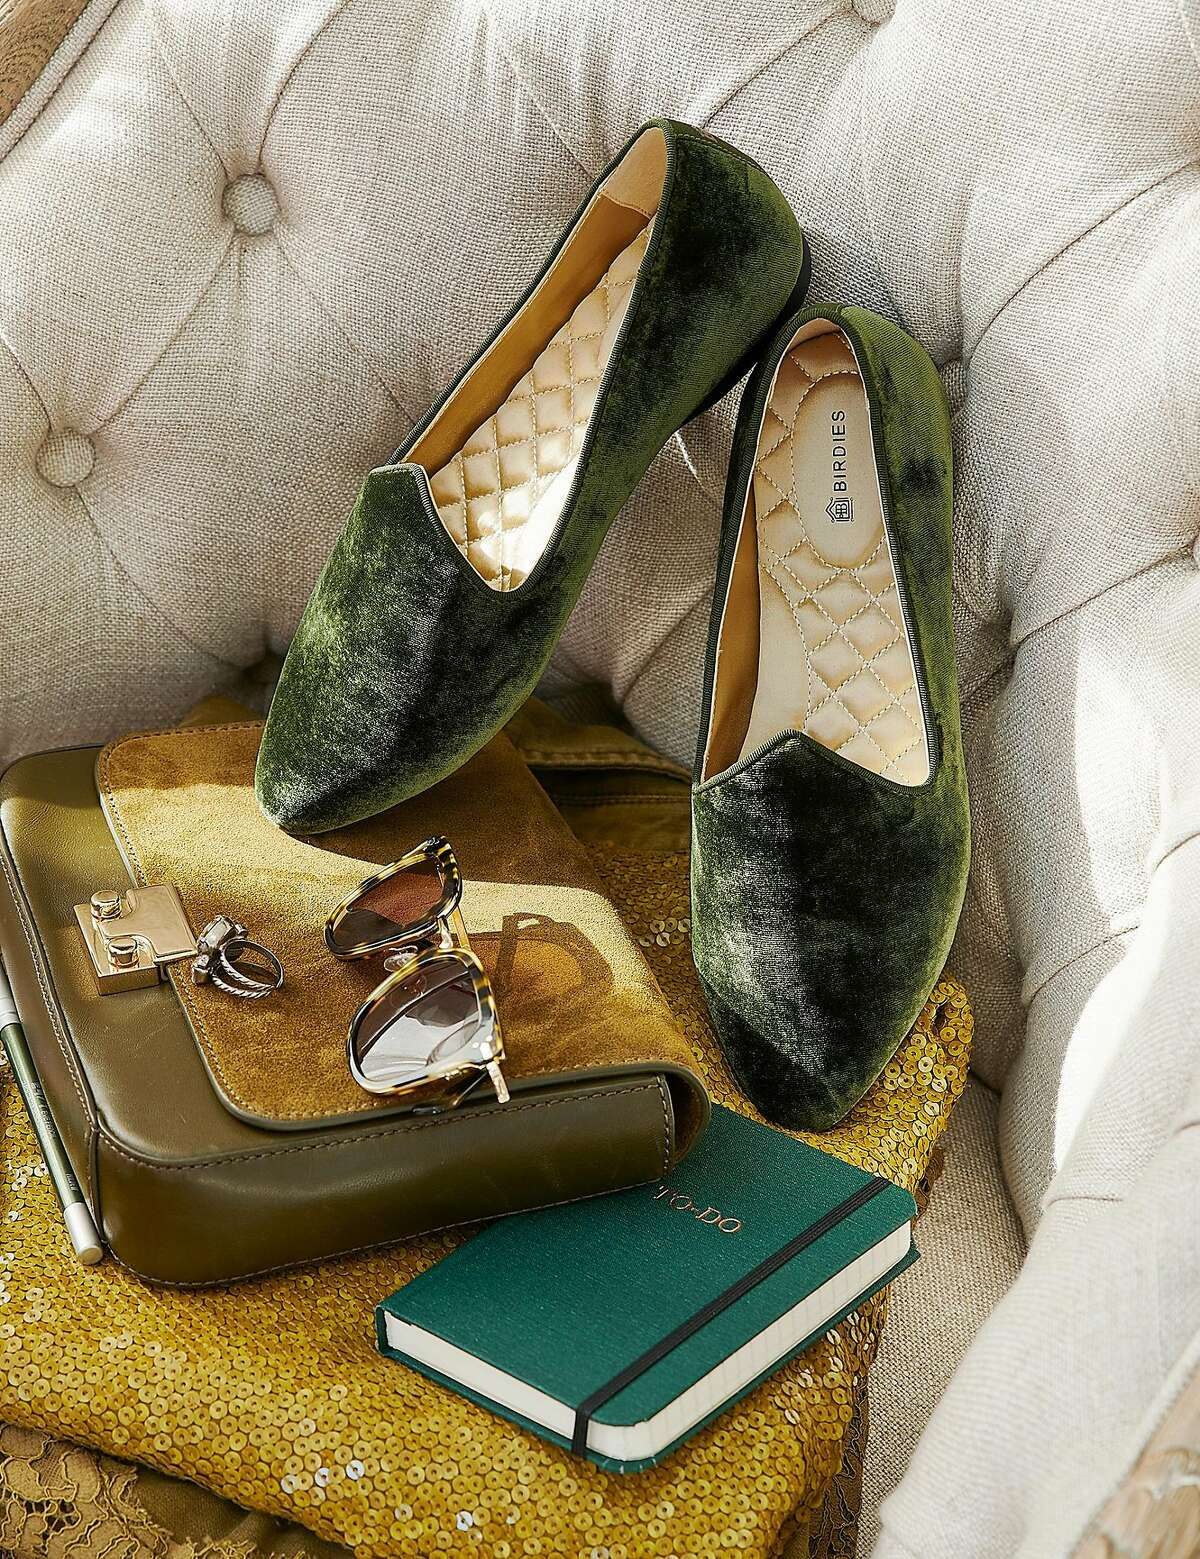 San Francisco startup Birdies is expanding with special collections and new styles, such as the Fall Heron in Olive.